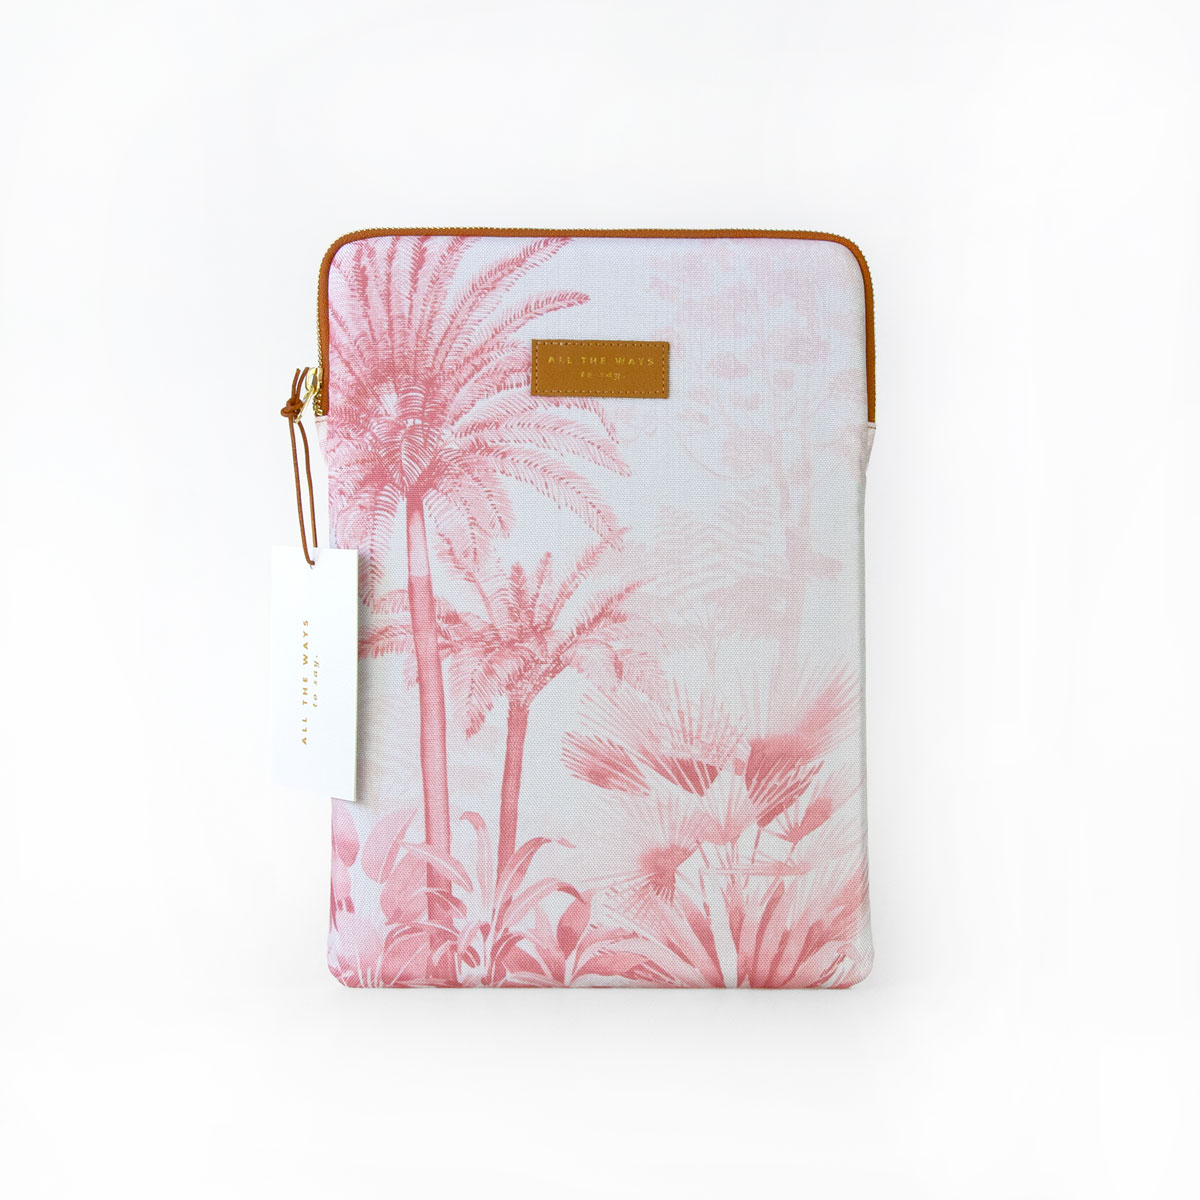 LAPTOP_PINK_FOREST_01